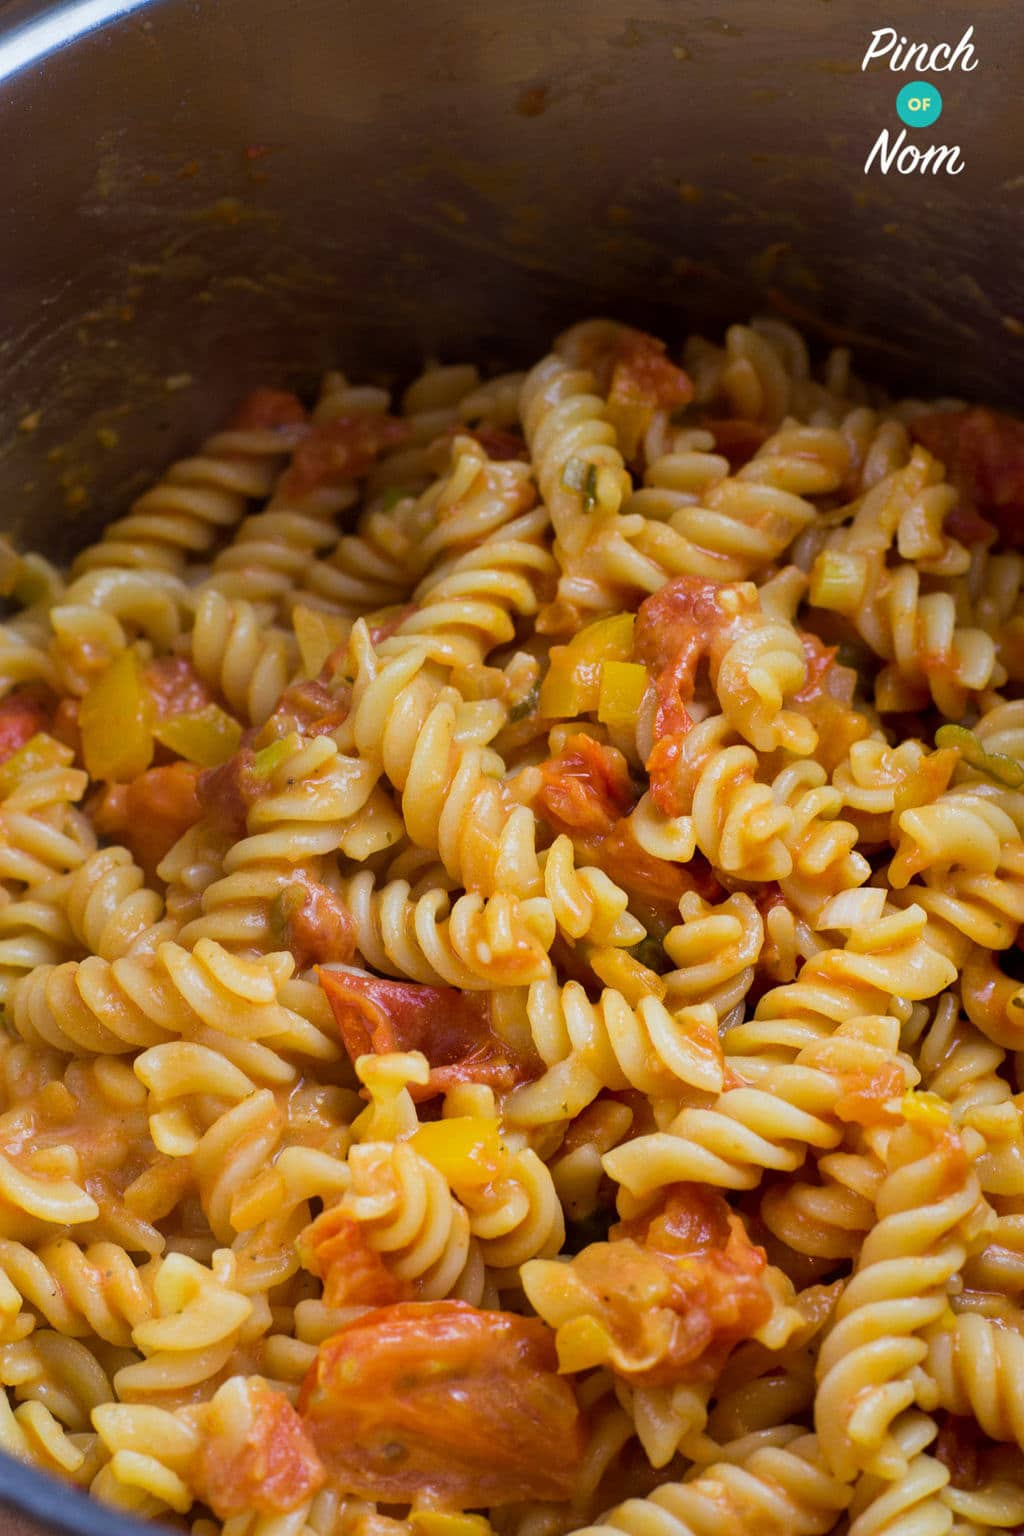 Cucina Pasta Sauce Syns Creamy Tomato Vodka Pasta Slimming World And Weight